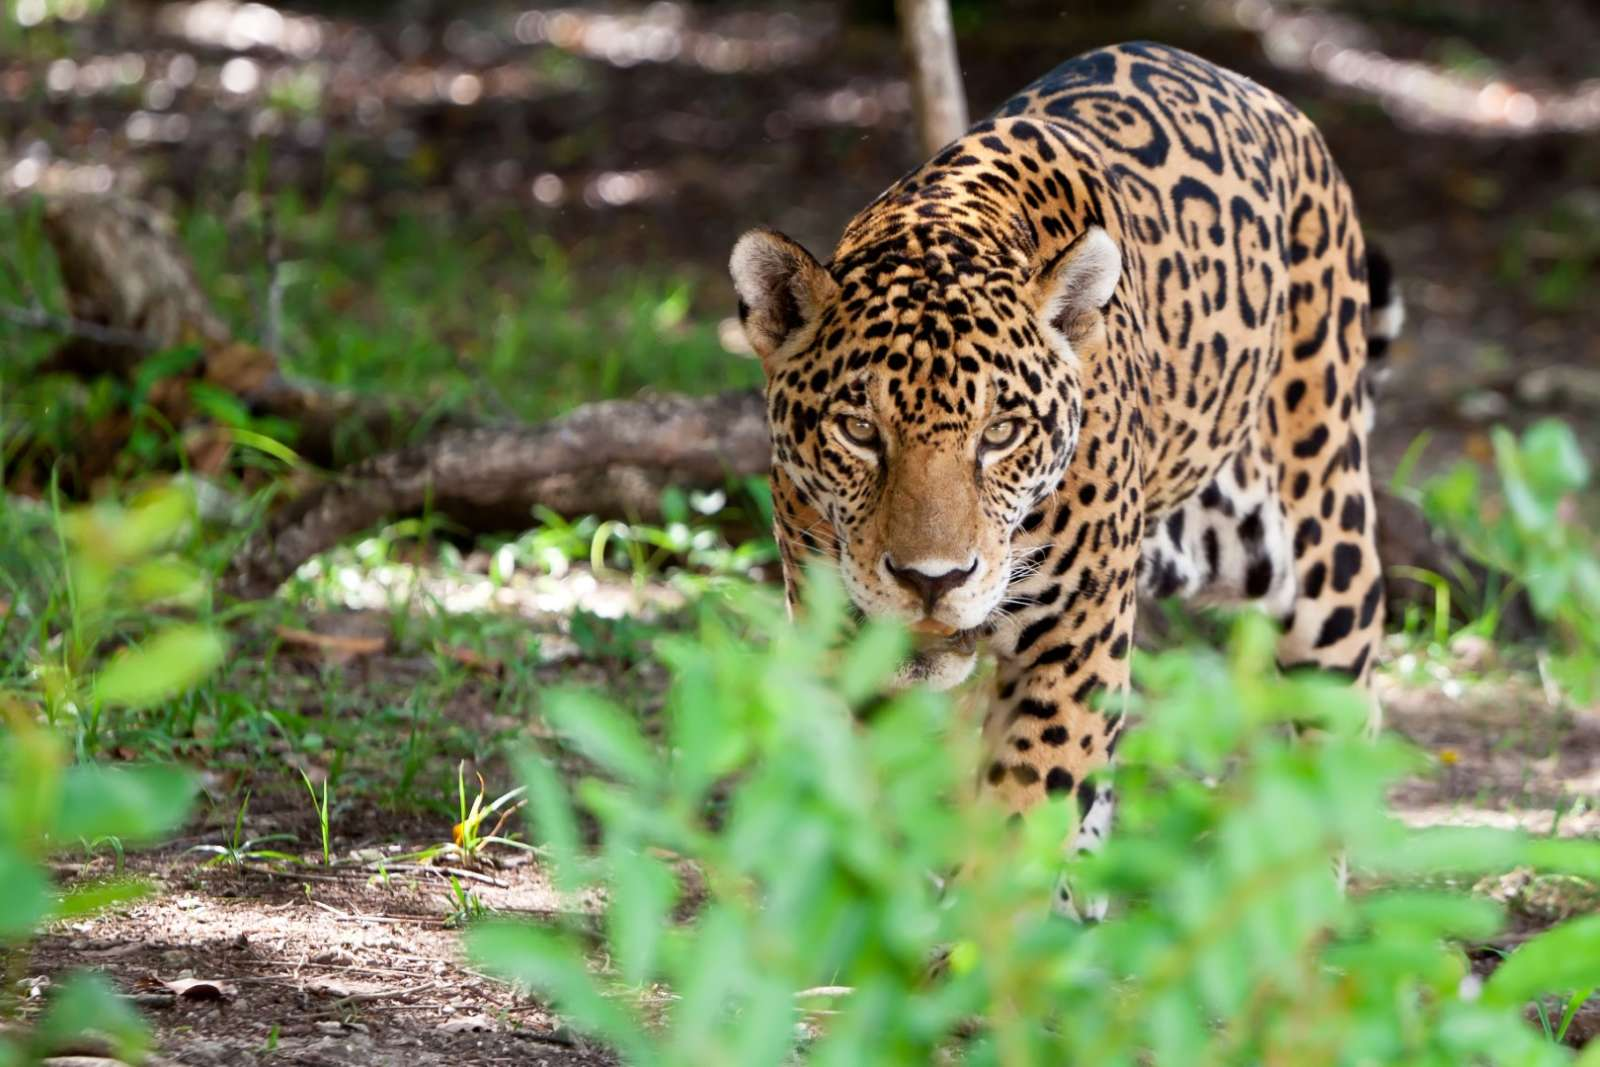 Jaguar in Calakmul in Mexico